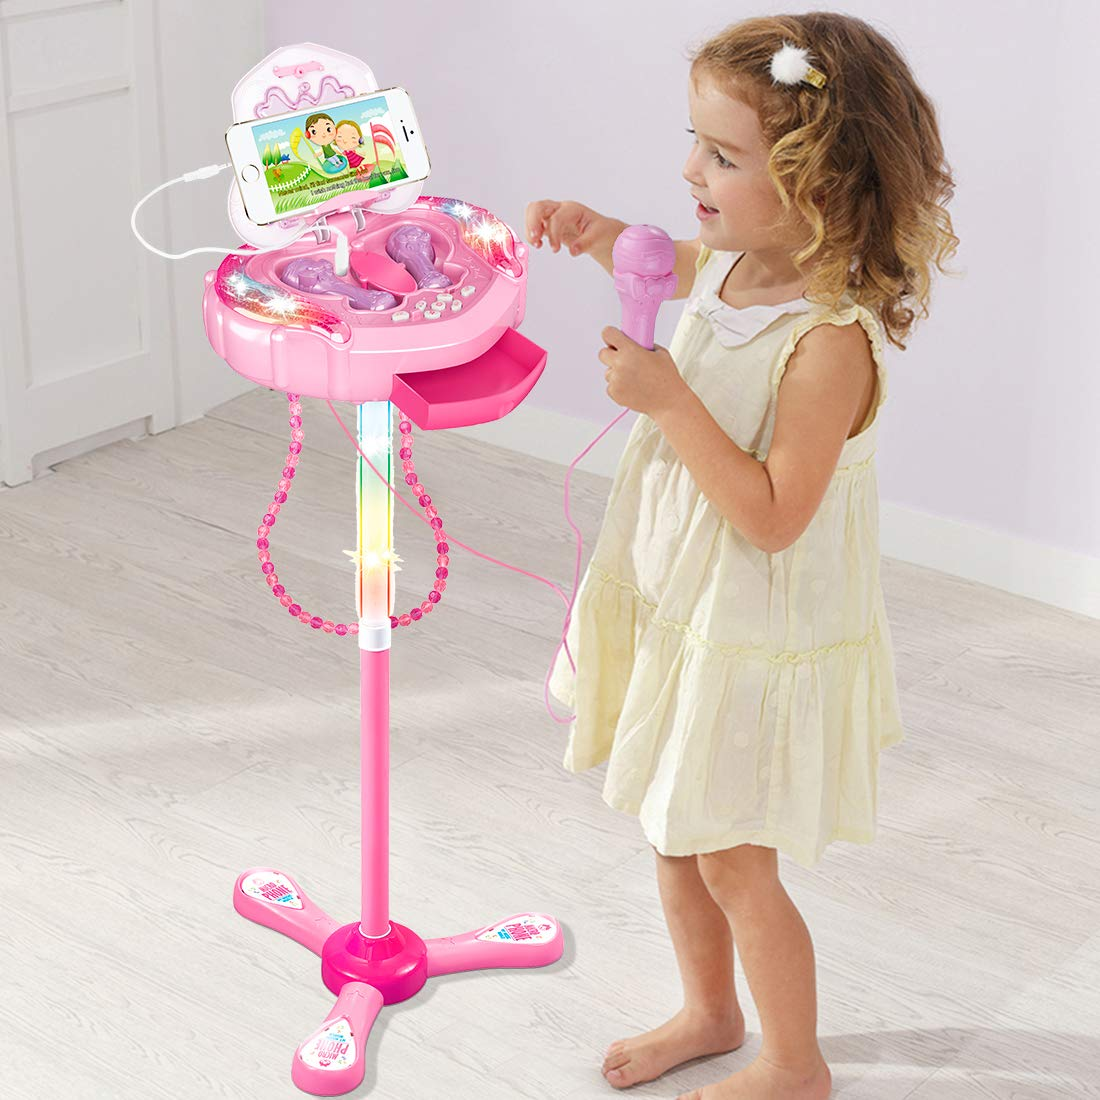 Anpro Kids Karaoke Machine with 2 Microphones & Adjustable Stand, Microphone Music Toy Play Set Music Player Best Birthday Gift for Kids by Anpro (Image #2)